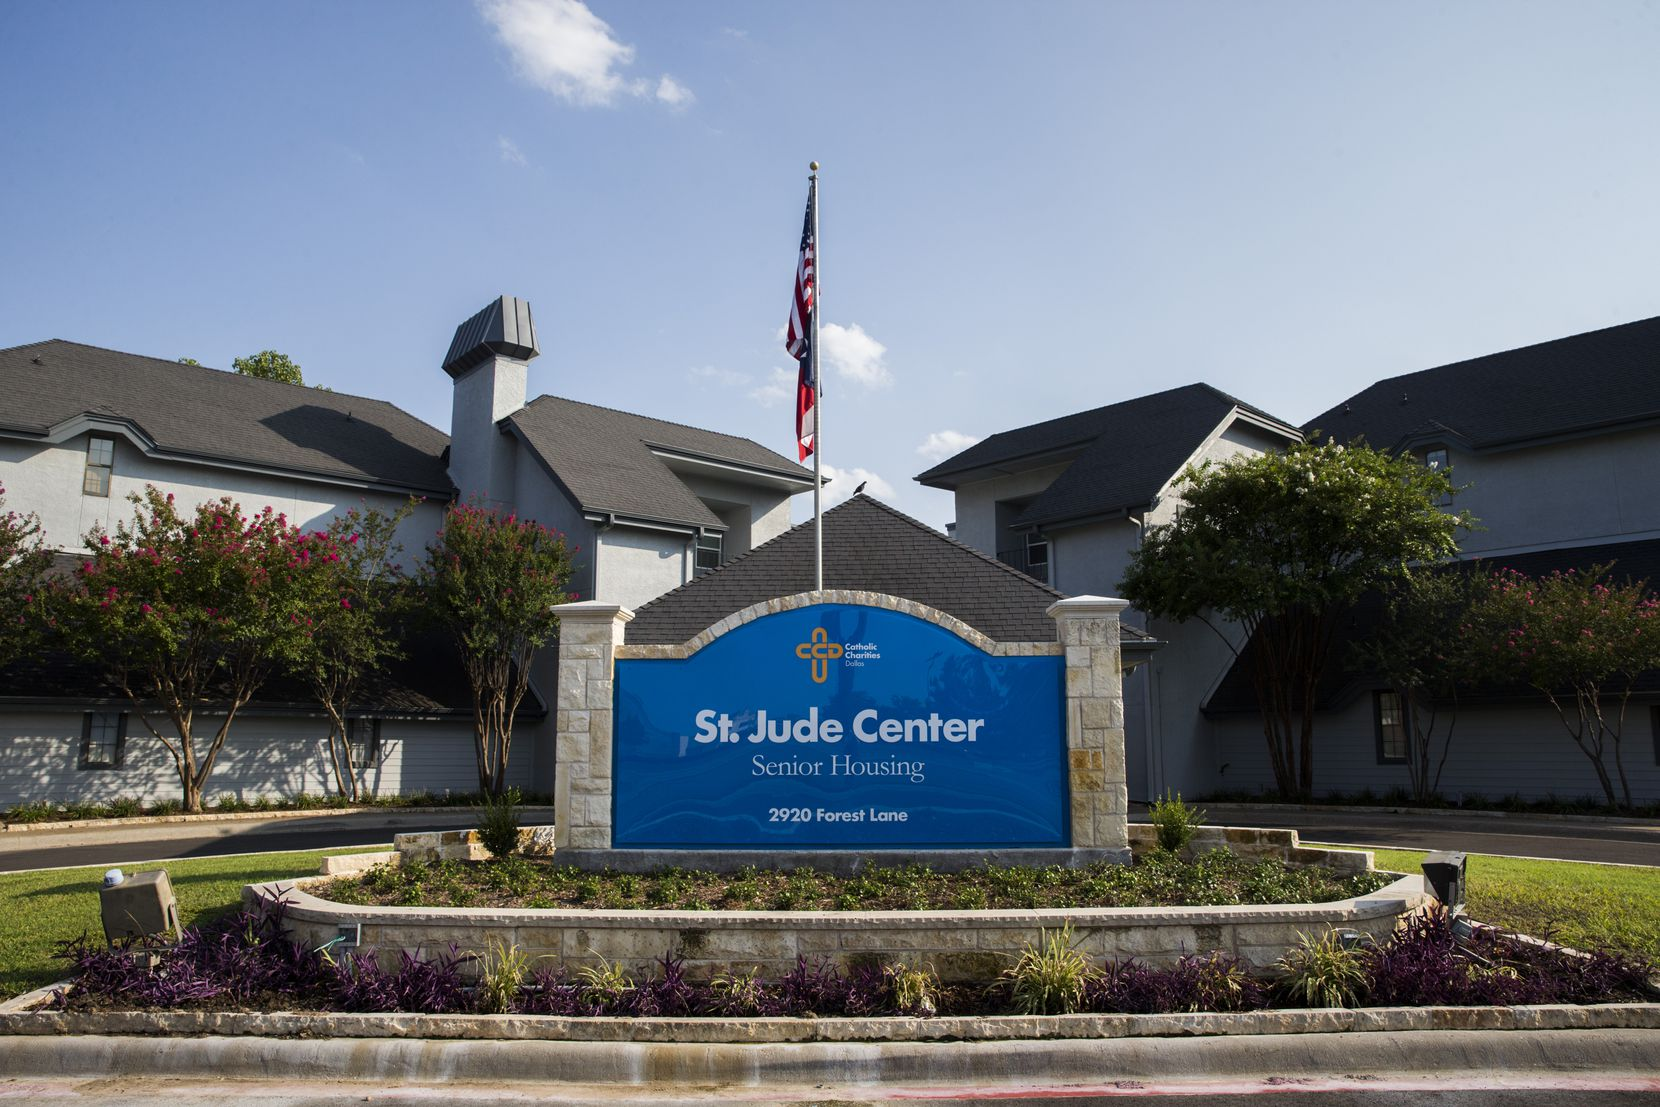 St. Jude Center had been a senior-living facility until Catholic Housing Initiative took over -- and rebuilt -- the complex, at the cost of $56,000 per unit, a bargain compared to new-construction costs.